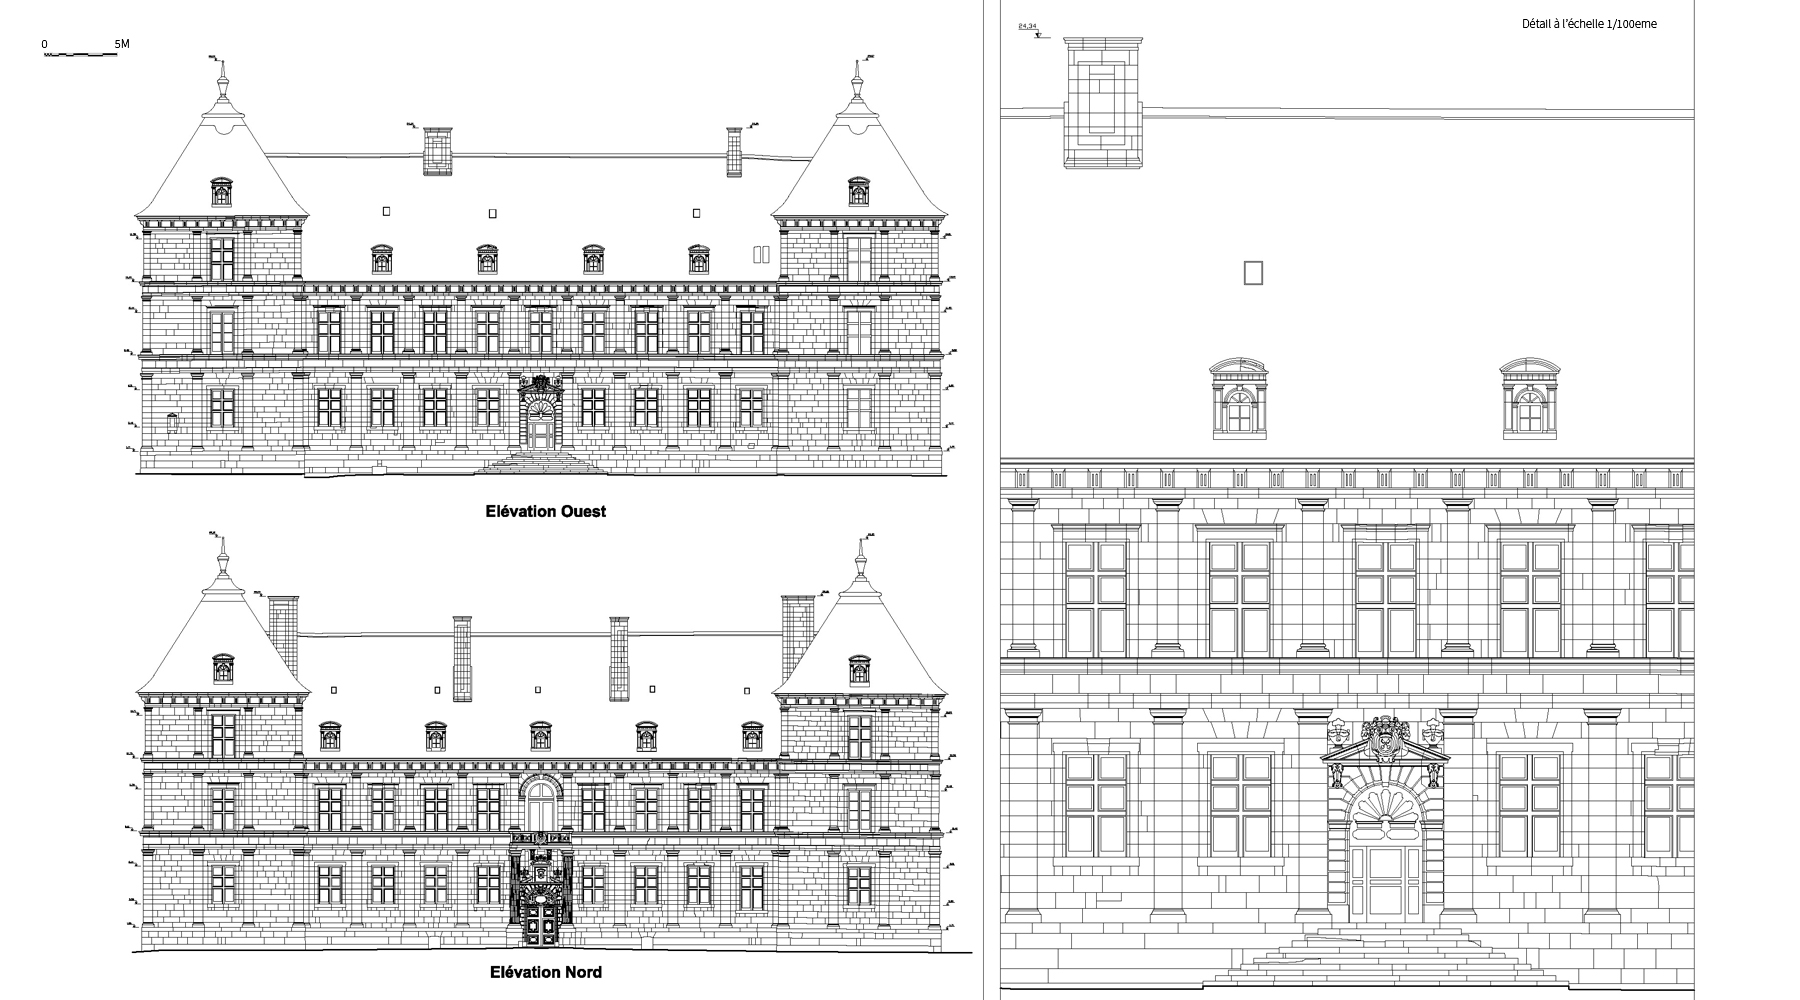 Château d'Ancy le Franc - Elevations